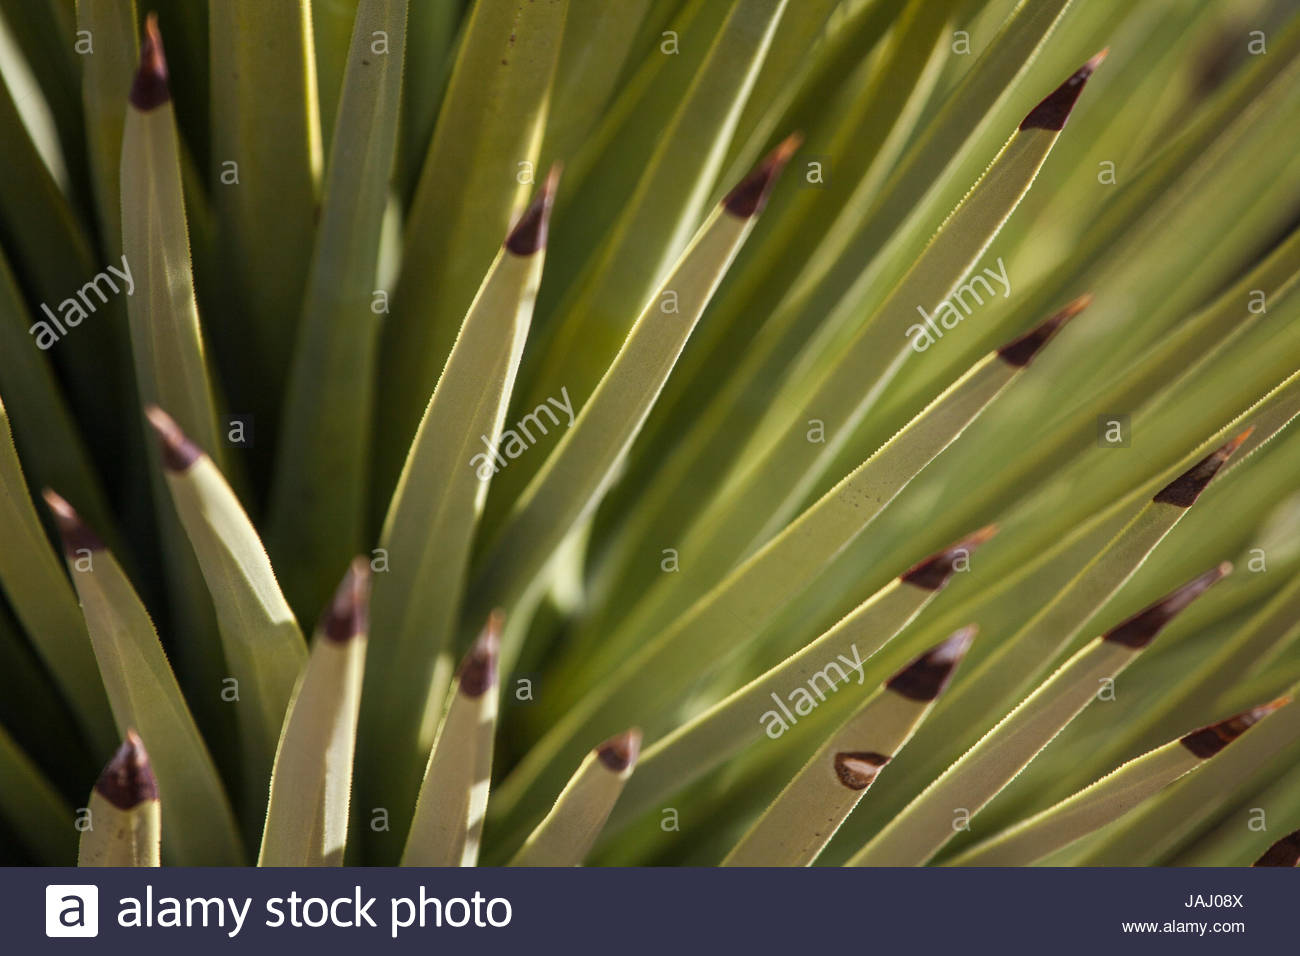 Close up of the blade-like leaves of a Joshua tree, Yucca brevifolia. - Stock Image